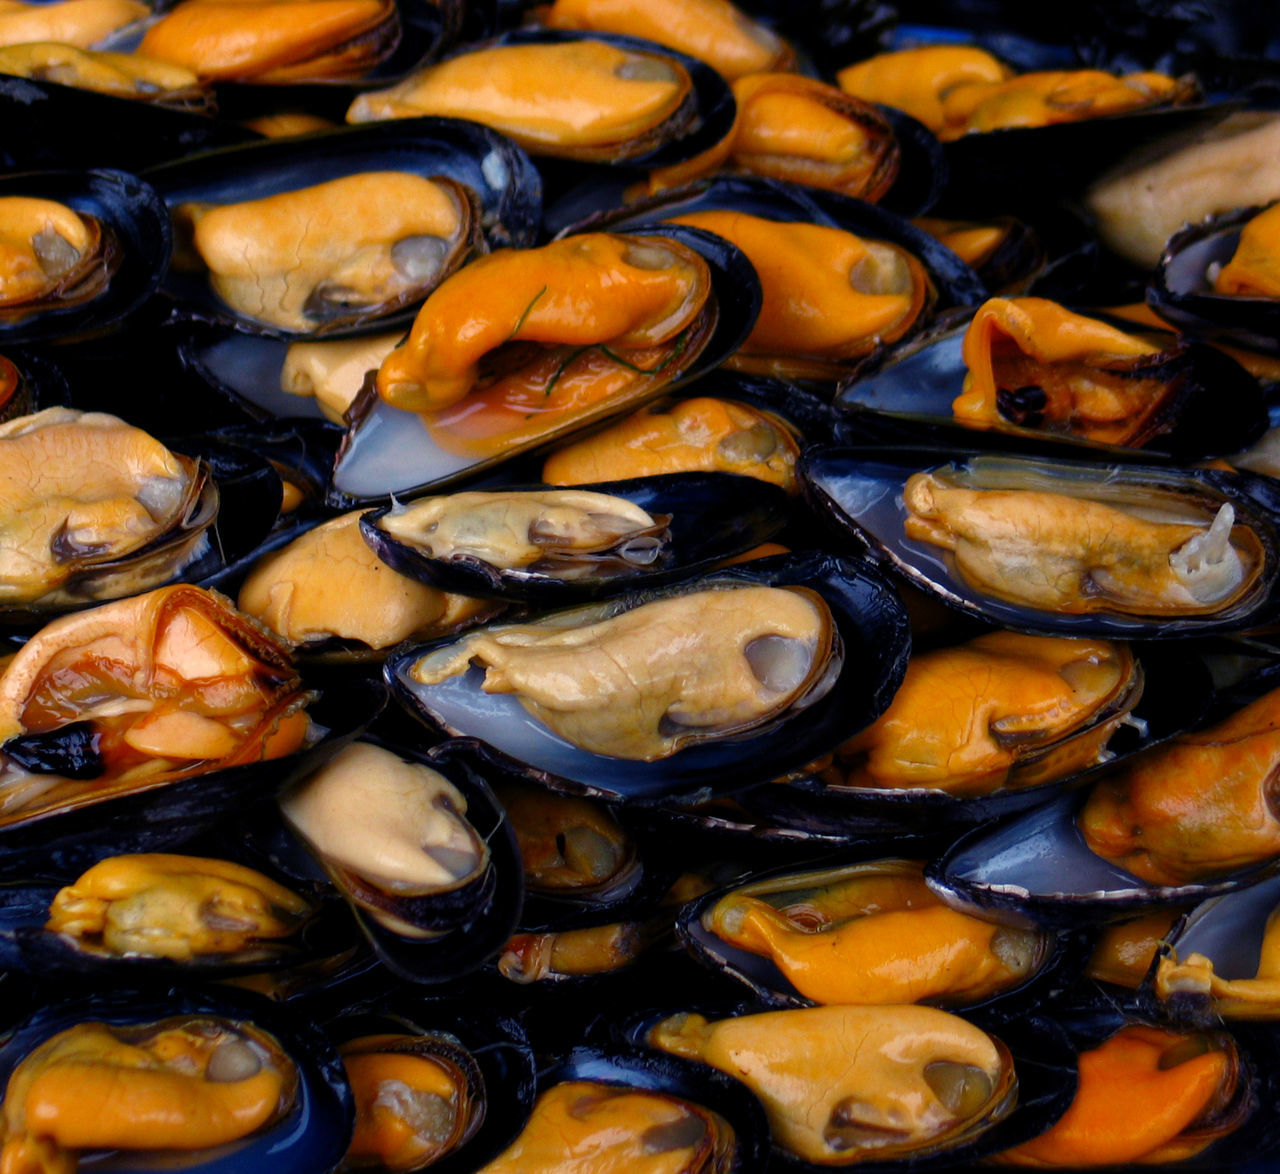 food and drink, food, seafood, freshness, full frame, healthy eating, wellbeing, backgrounds, no people, close-up, mussel, indoors, still life, large group of objects, high angle view, ready-to-eat, crustacean, abundance, shell, animal, temptation